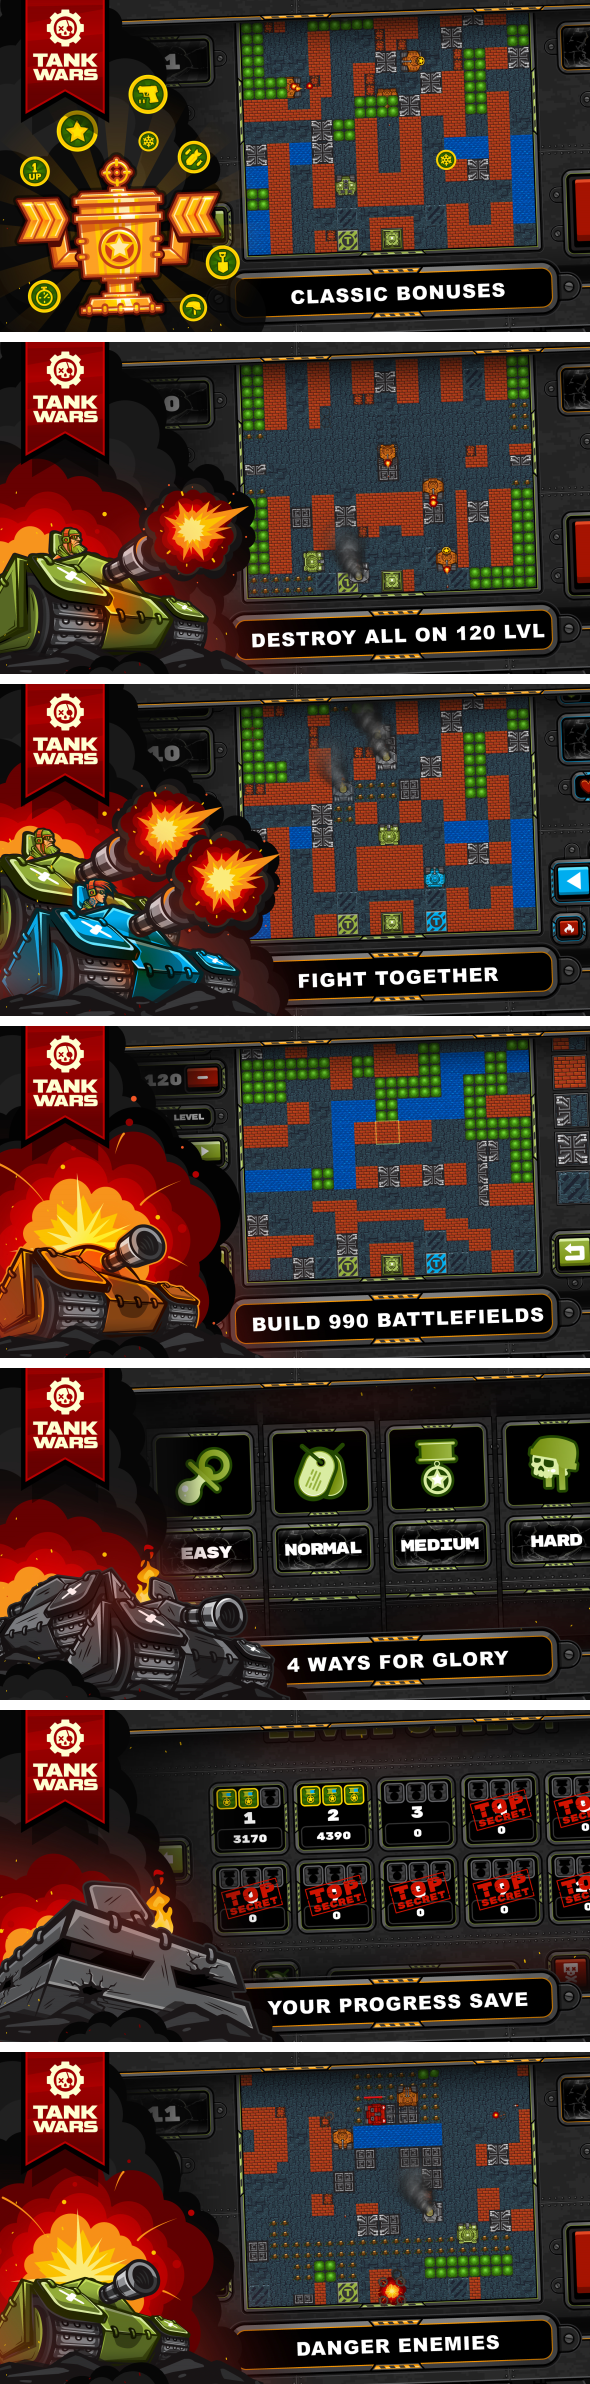 Tank Wars - HTML5 Game 120 Levels + Level Constructor + Mobile! (Construct 3 | Construct 2 | Capx) - 3